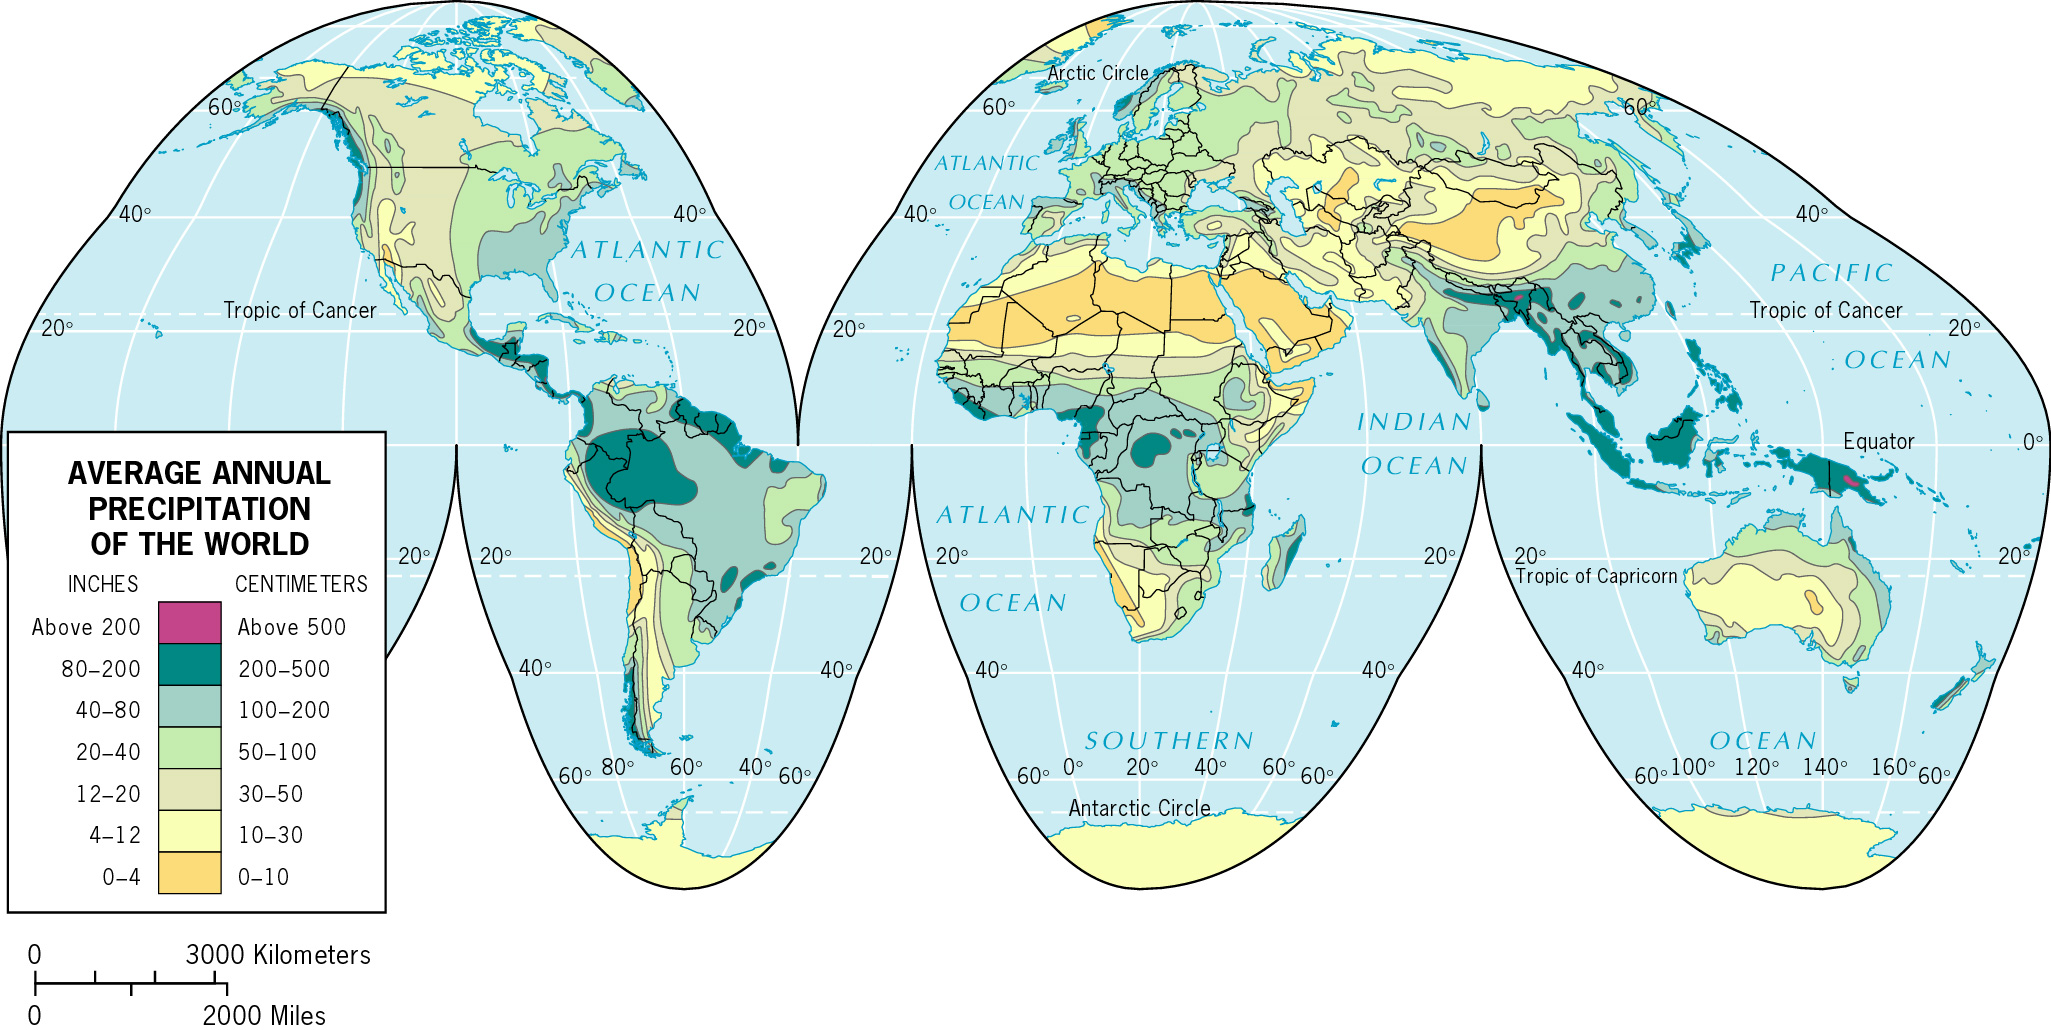 ... of the world. Maps of the world resources — Planetolog.com